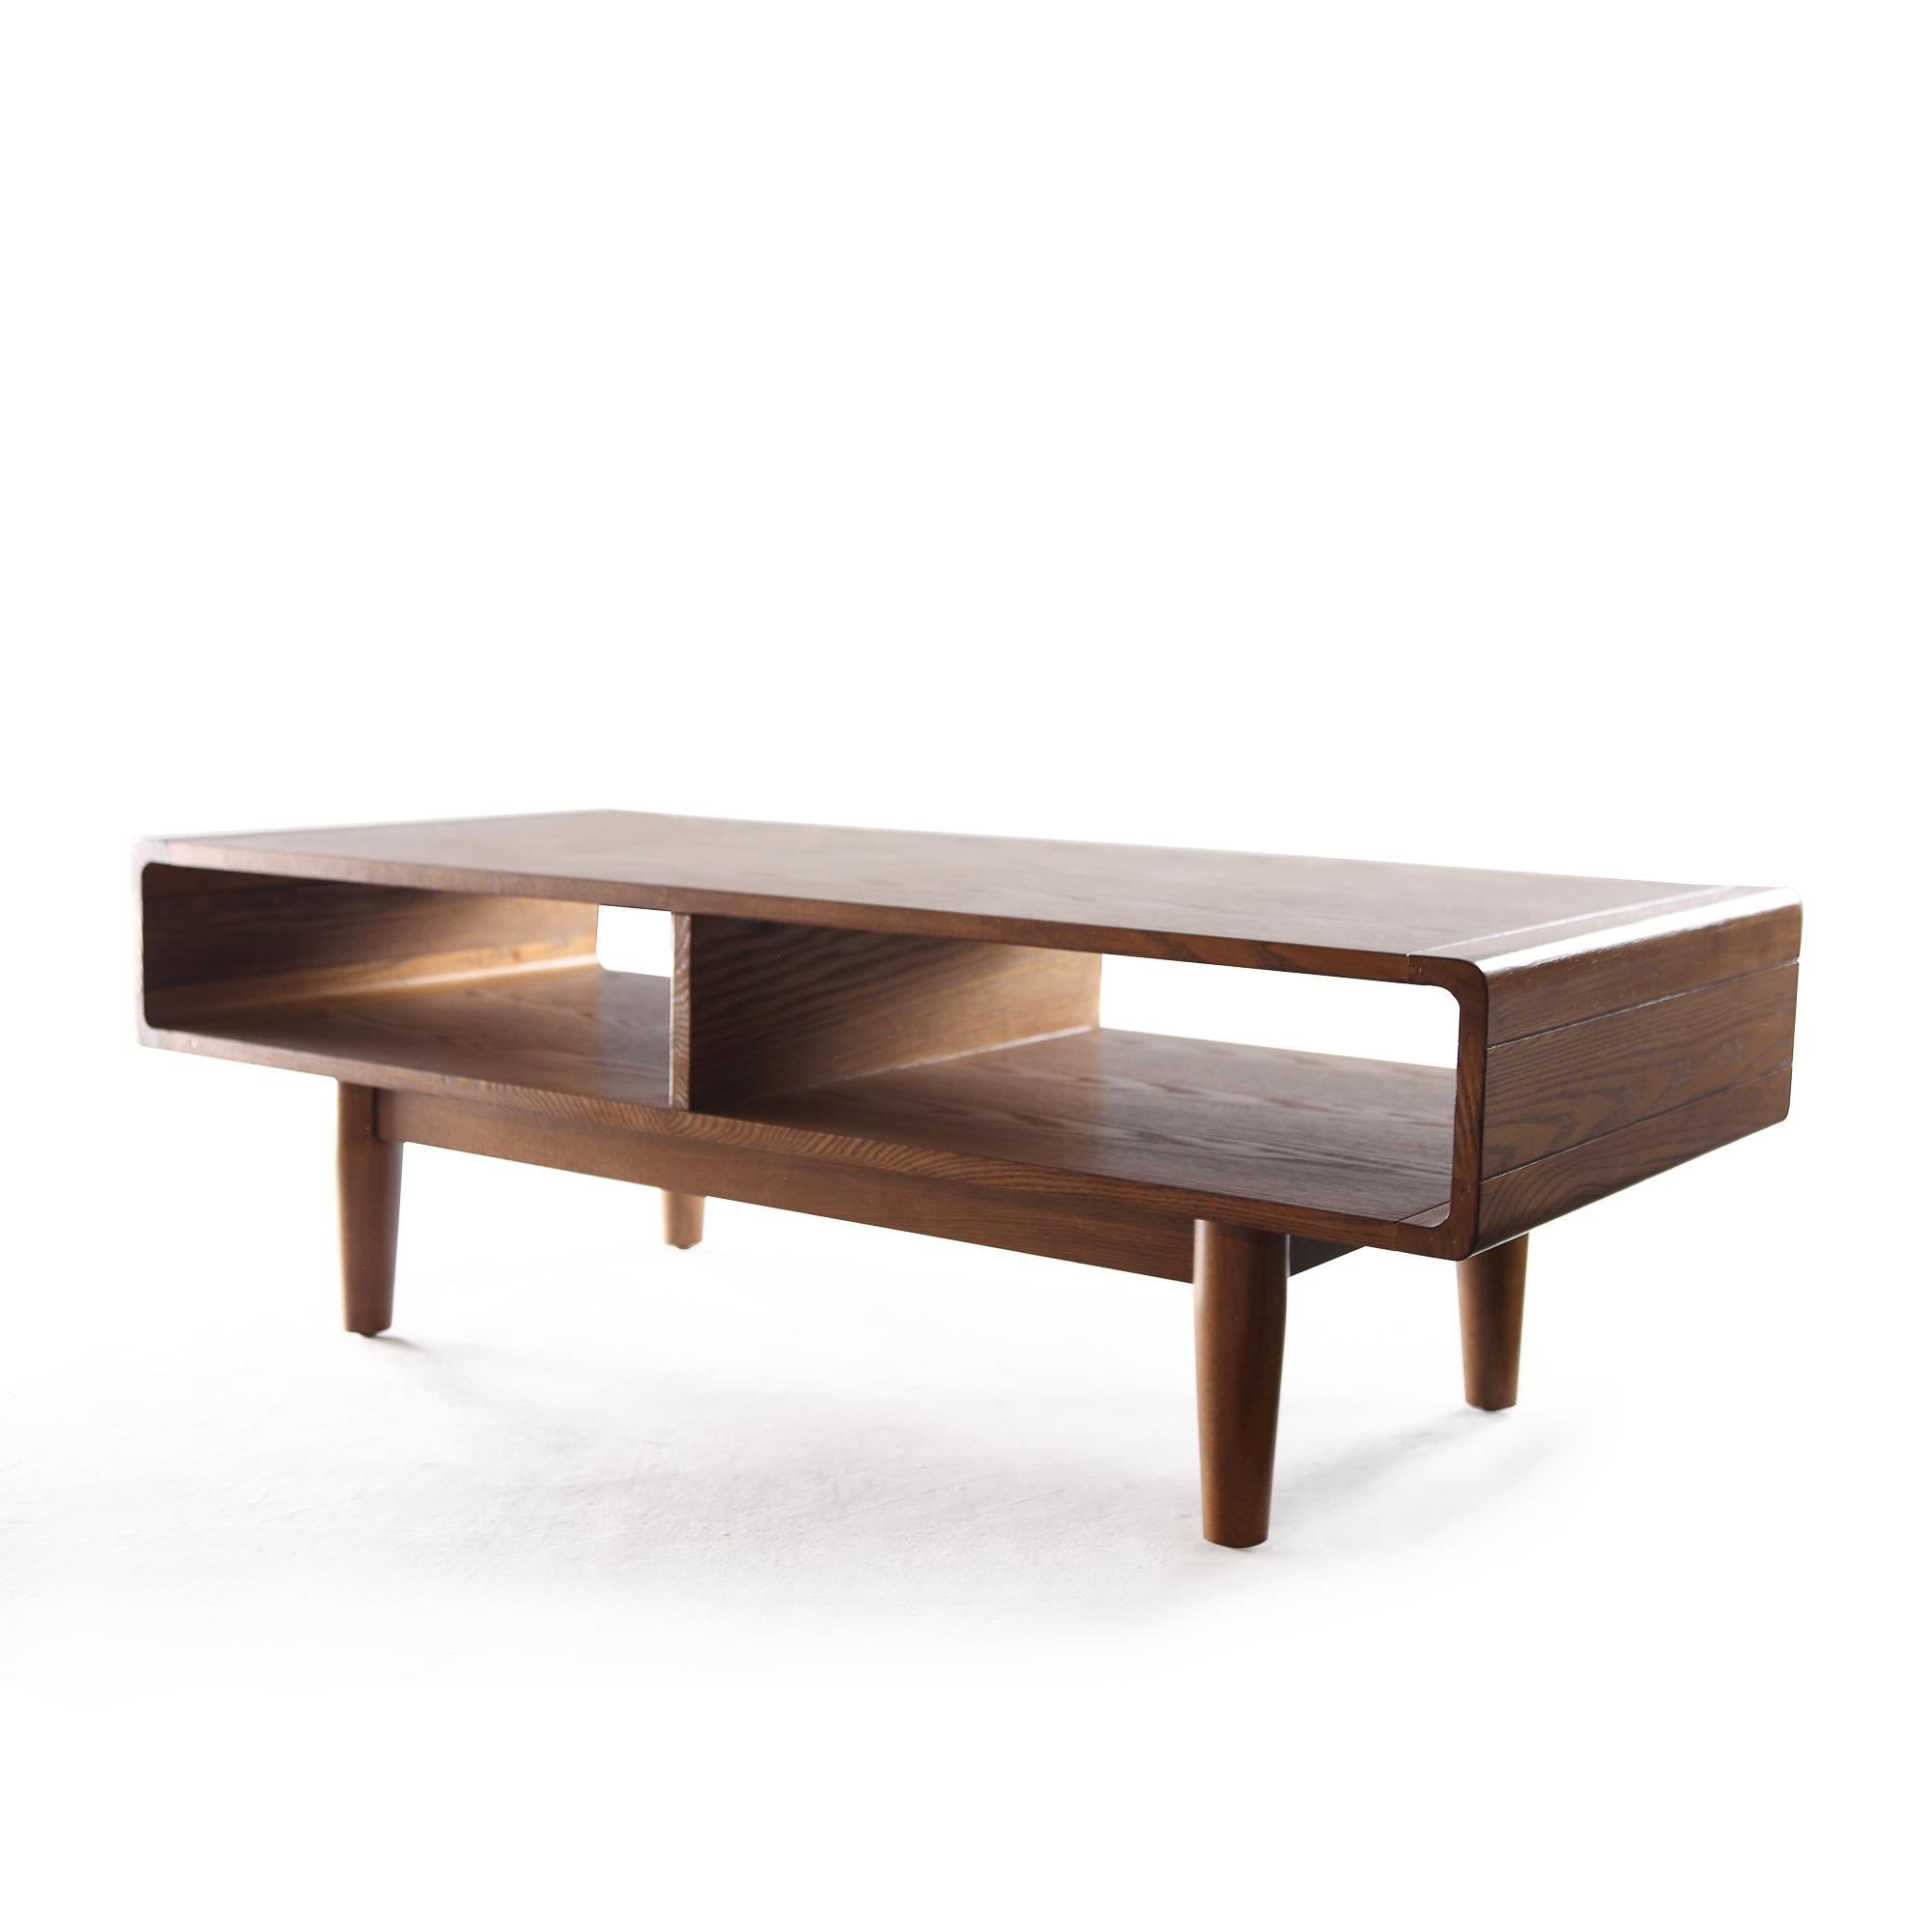 Haven Coffee Tables Regarding Preferred Dexter Coffee Table ~ Deco Walnut – Haven Home Furniture (View 8 of 20)